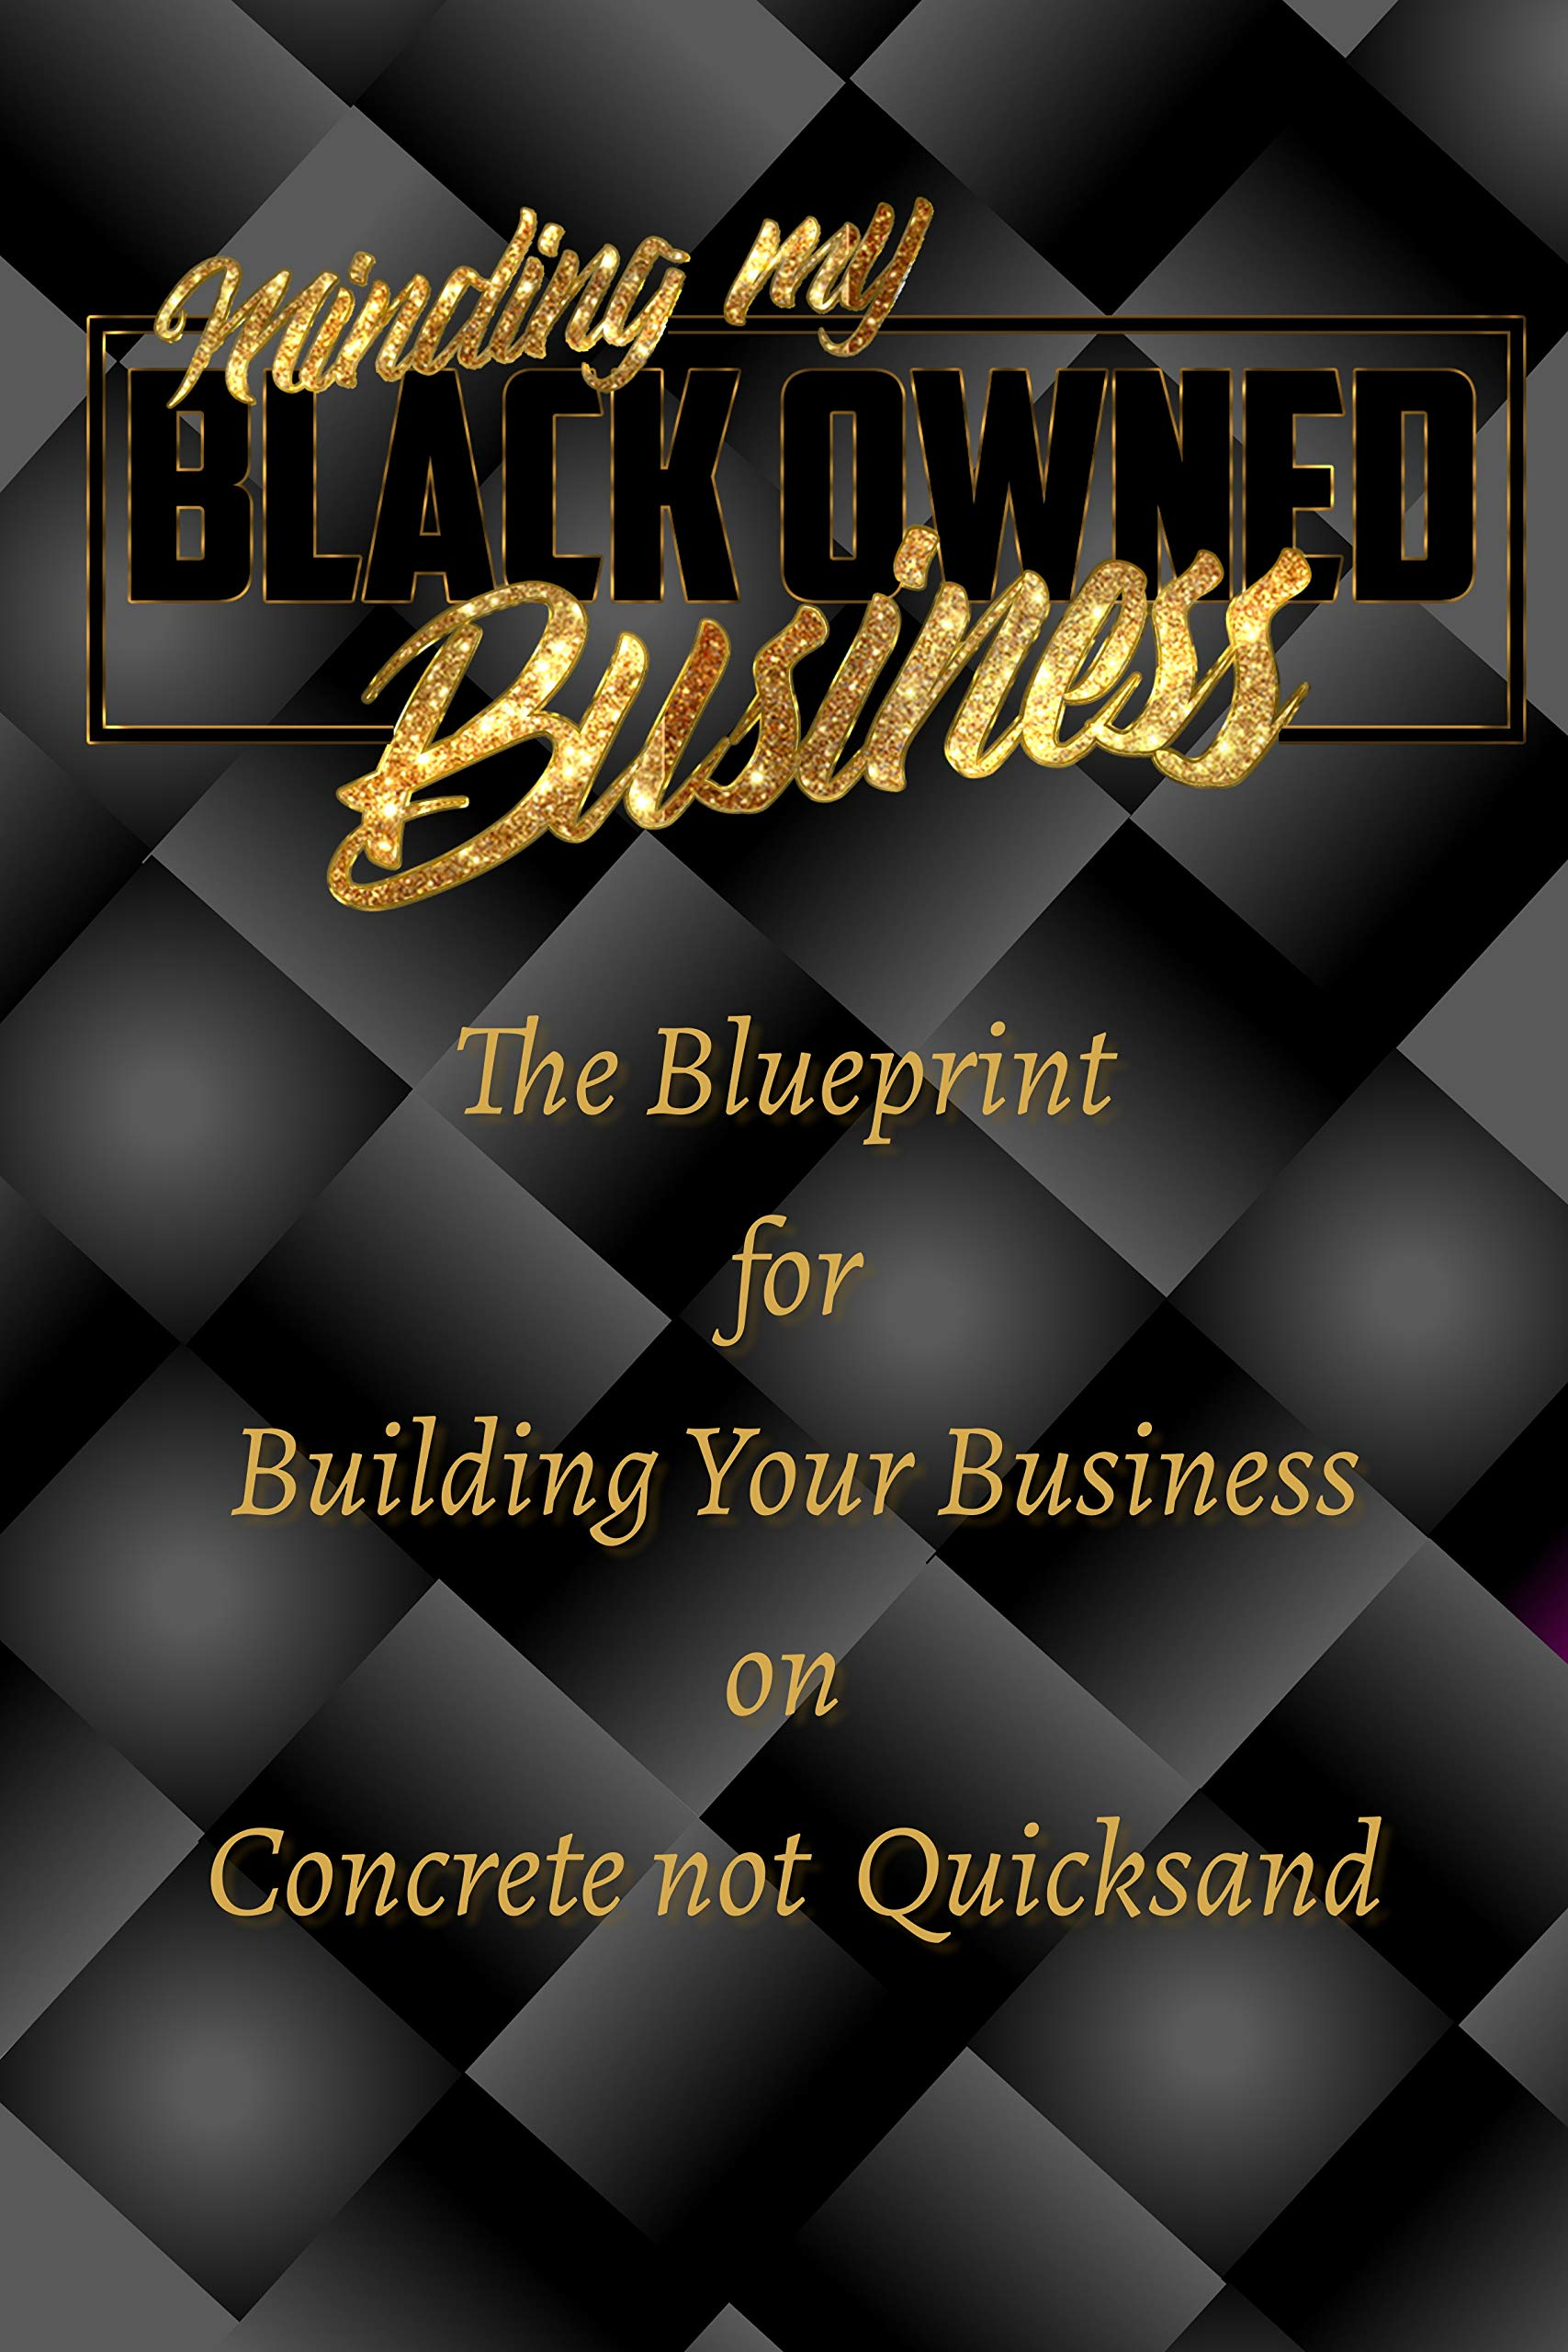 Minding my Black Owned Business: The Blueprint for Building your Business on Concrete not Quicksand